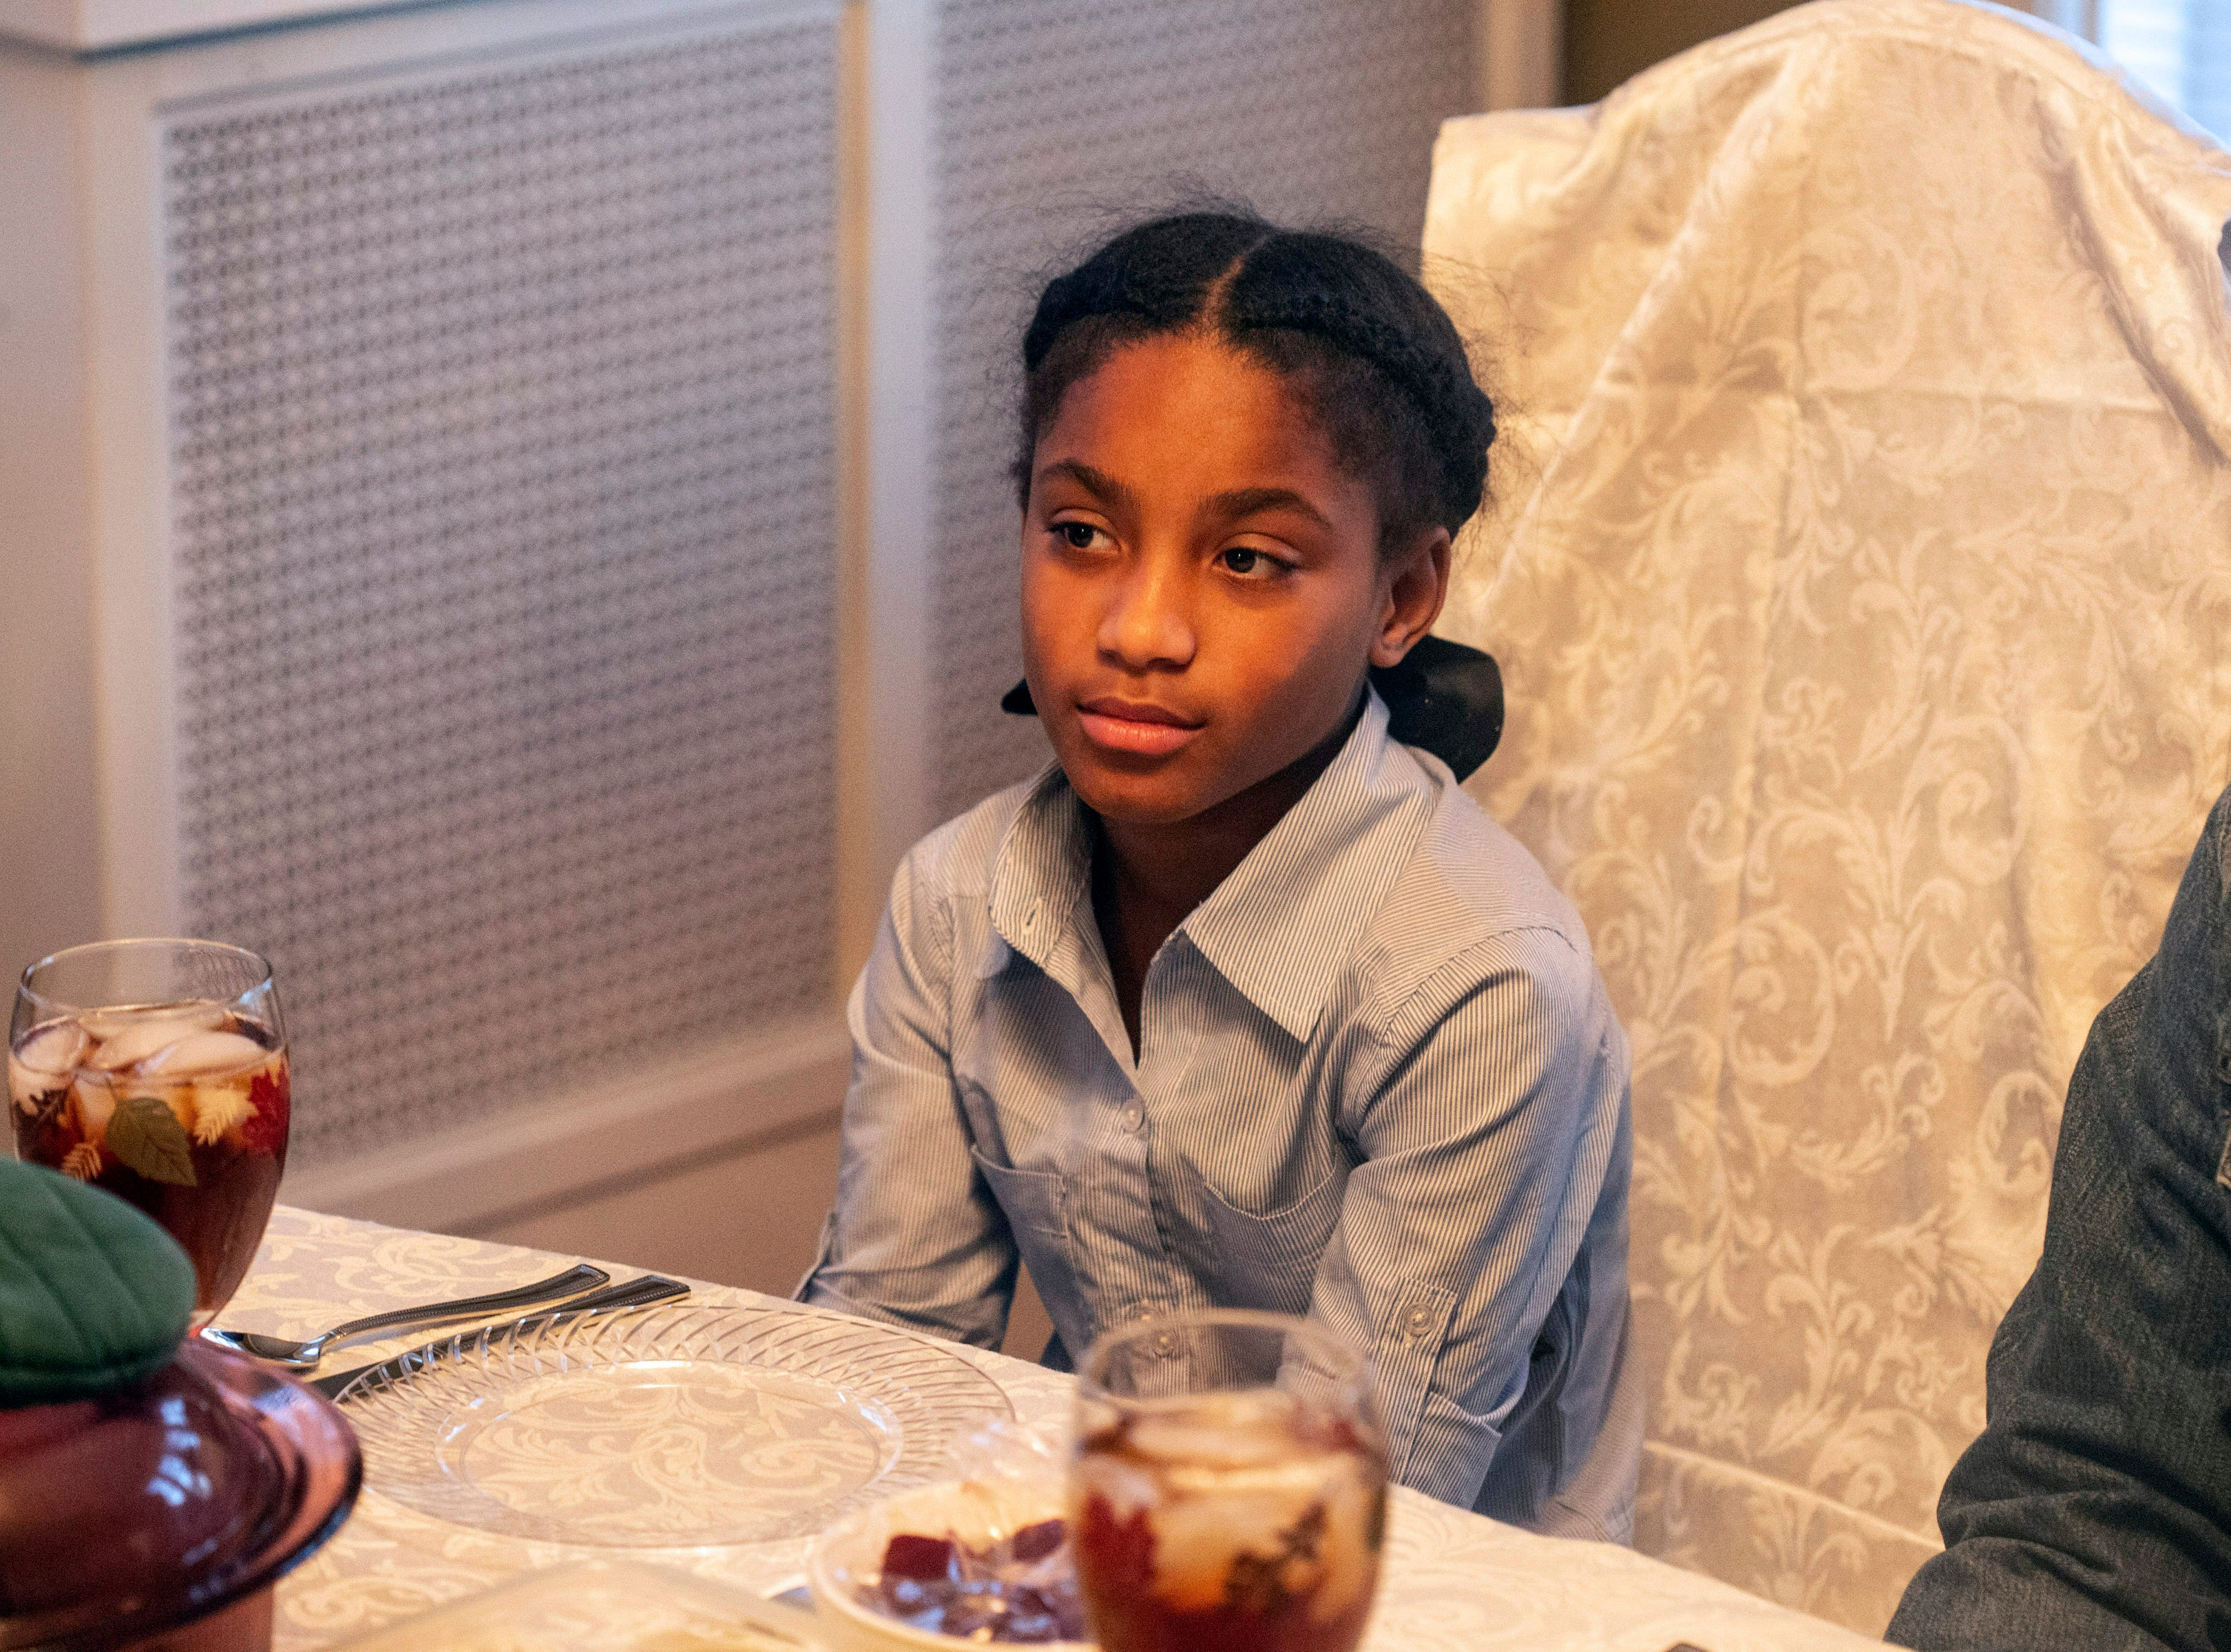 Malay Gaither, the Reverend Kevin Cosby's 10-year-old granddaughter, sits next to him during a Saturday family dinner. 11/24/18